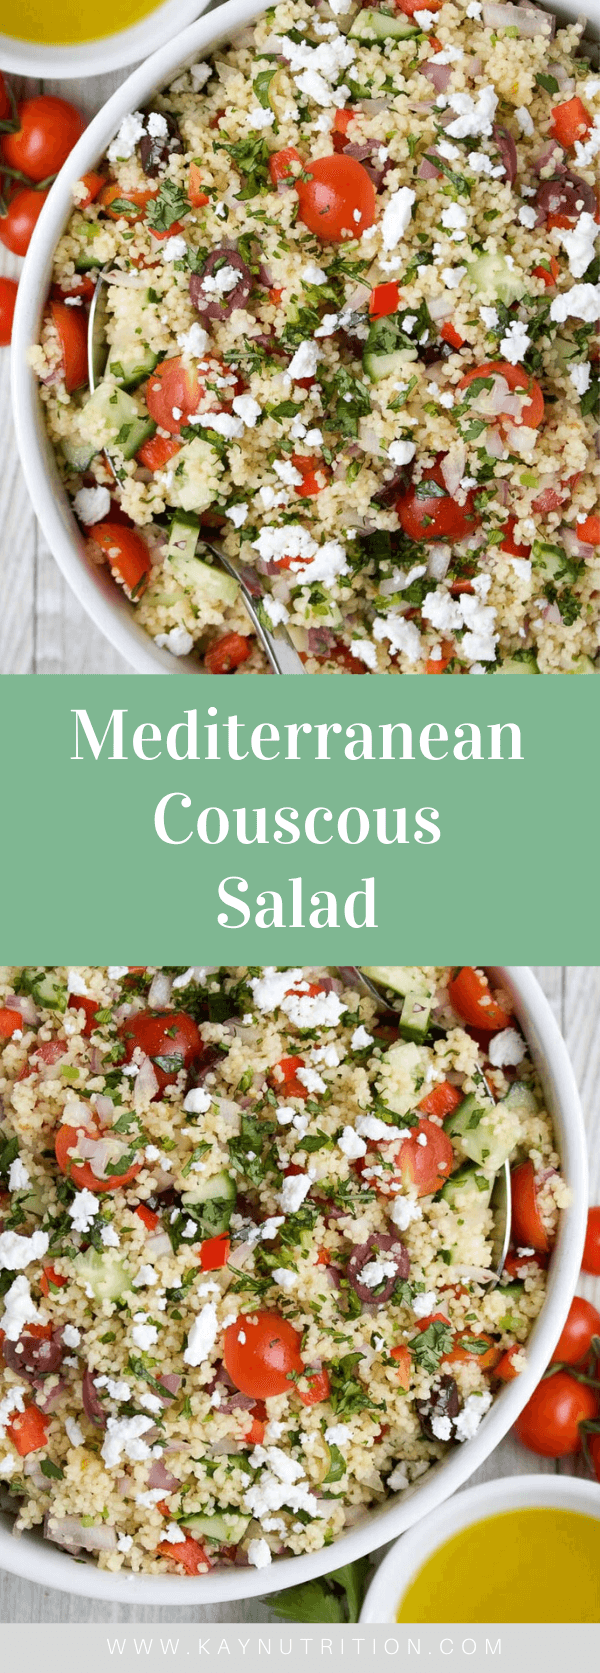 Filled with Greek flavours, this Mediterranean Couscous Salad recipe is quick and easy to make, and packed full of fresh vegetables and fibre making it a healthy side dish or lunch. Not only is this healthy recipe easy to make, but it stores well in the fridge for up to 3 days making it a great healthy meal prep idea. #couscous #recipes #healthyrecipes #saladrecipes